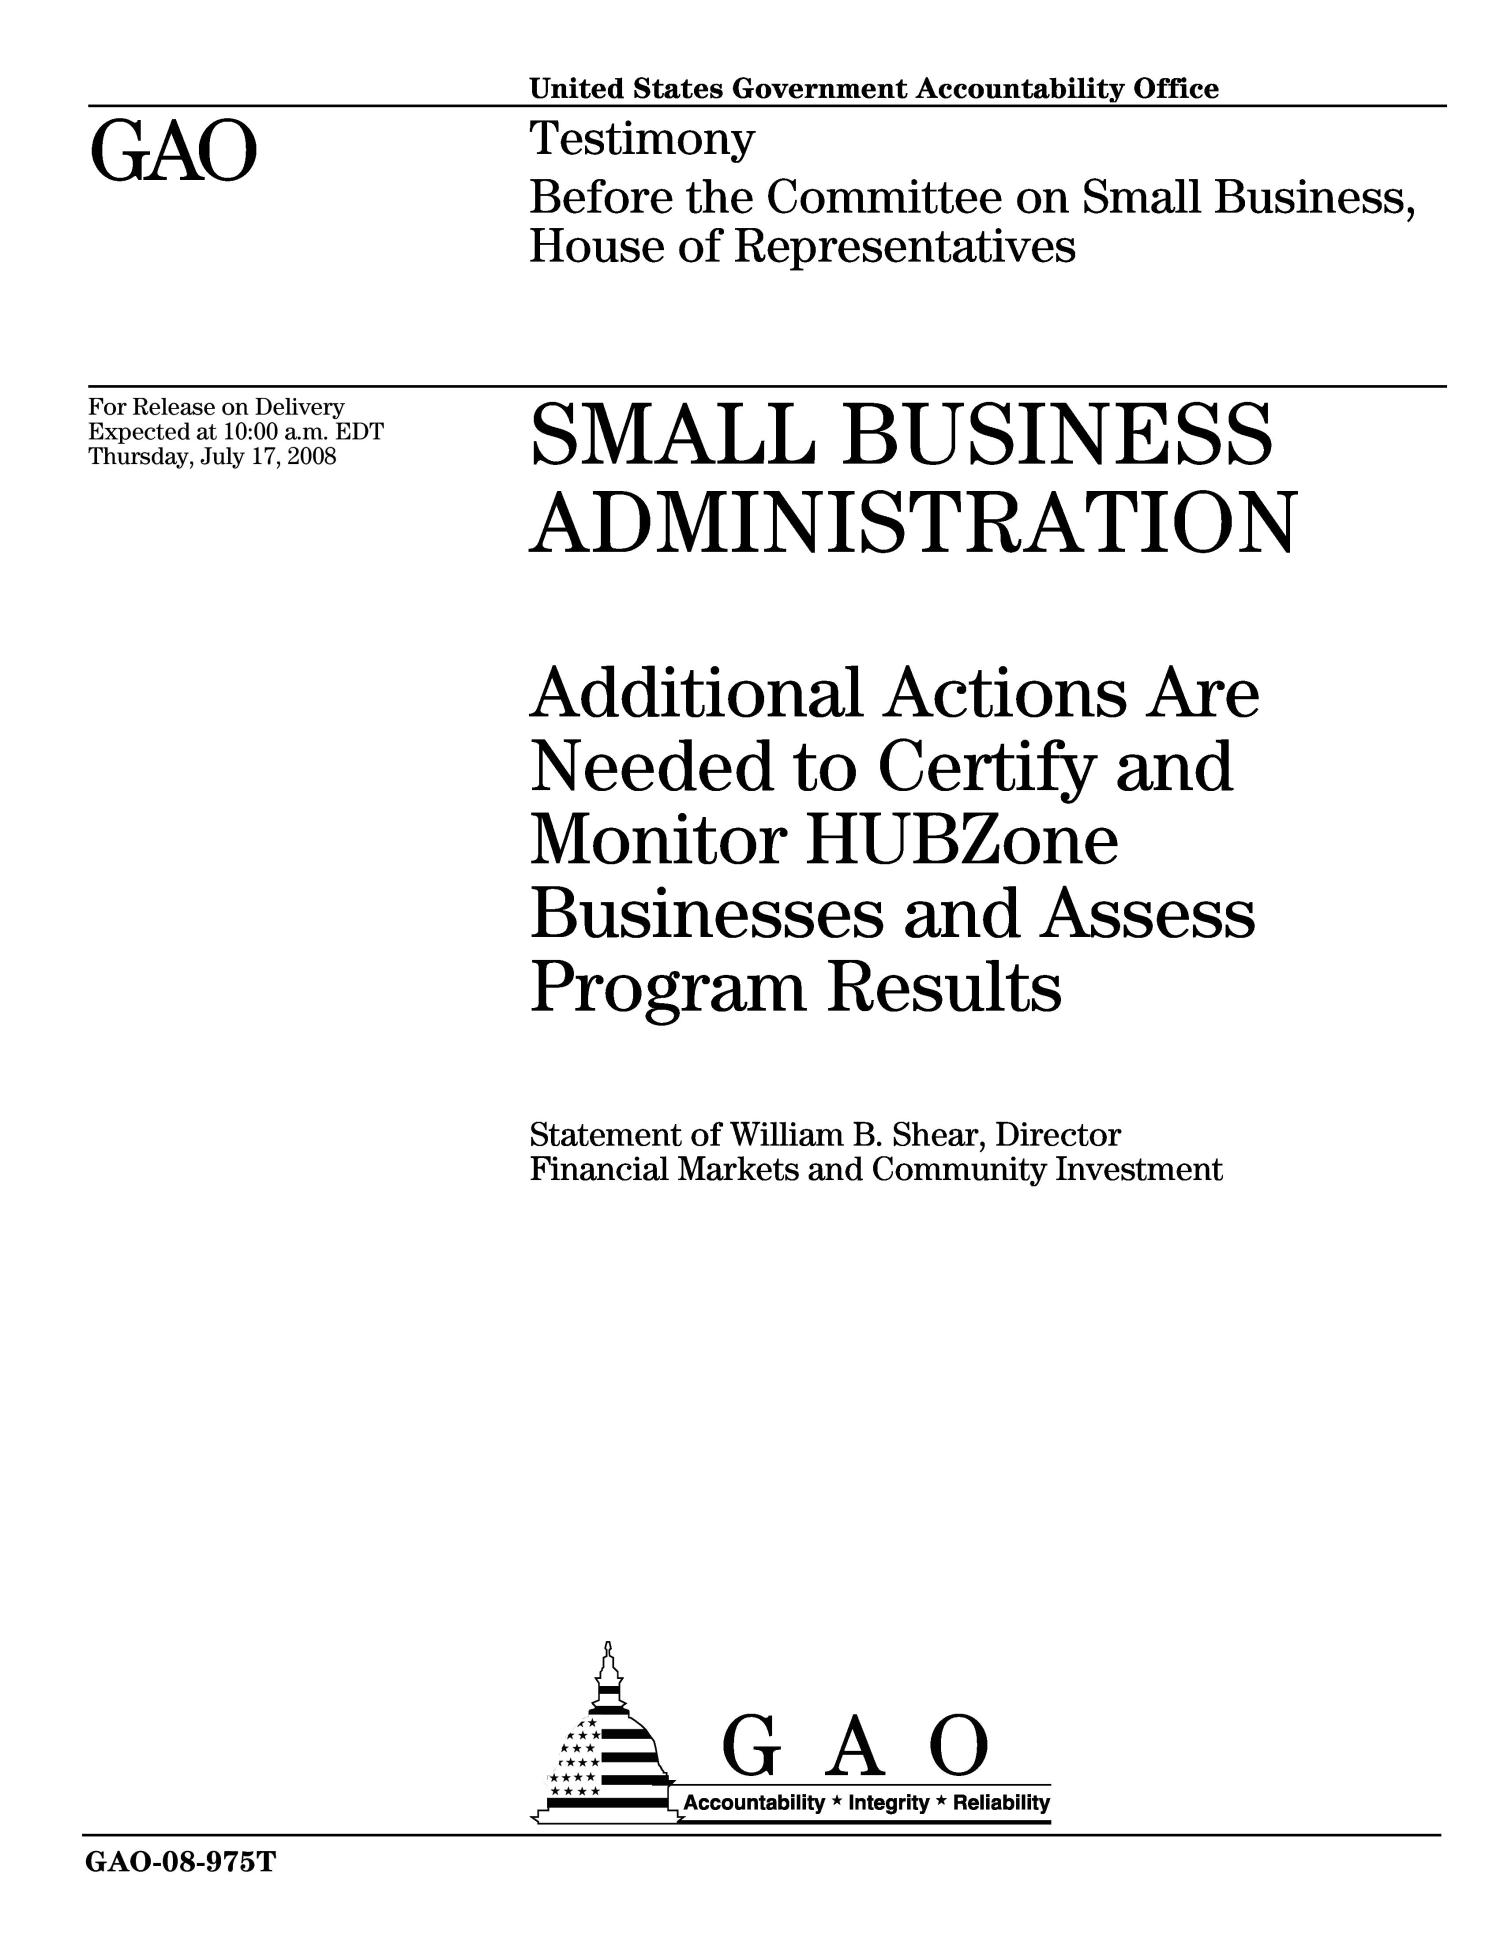 Small Business Administration: Additional Actions Are Needed to Certify and Monitor HUBZone Businesses and Assess Program Results                                                                                                      [Sequence #]: 1 of 23